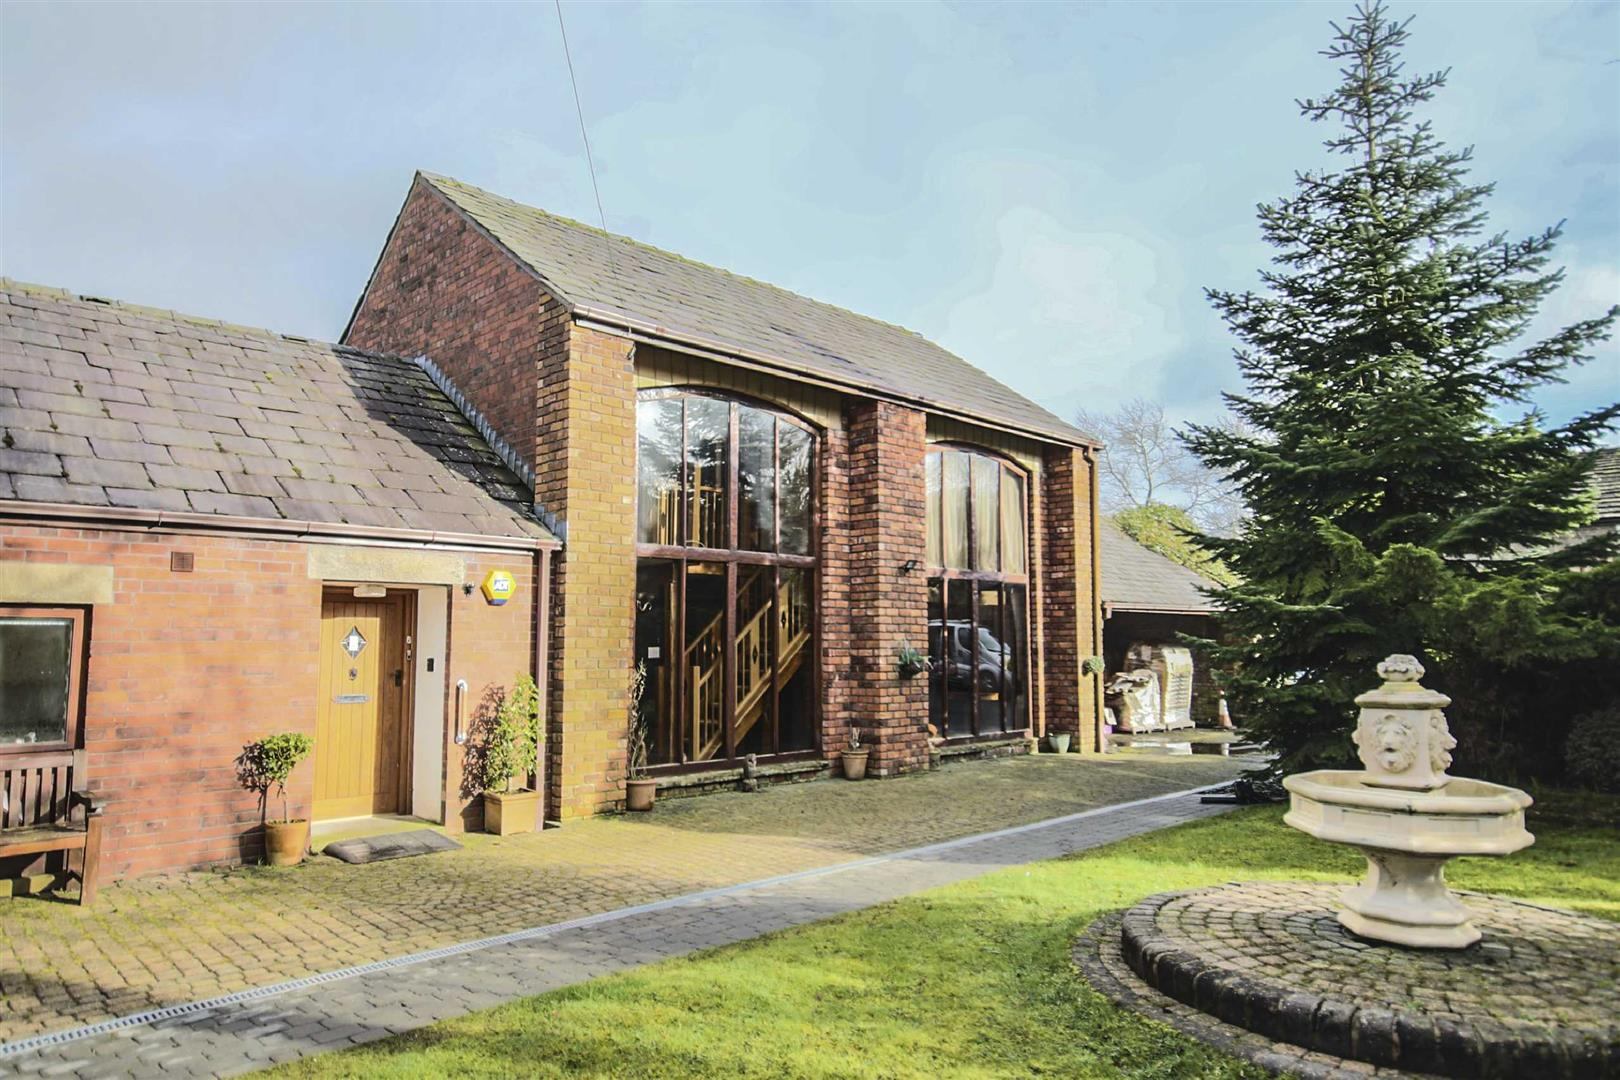 3 Bedroom Barn Conversion For Sale - Image 2